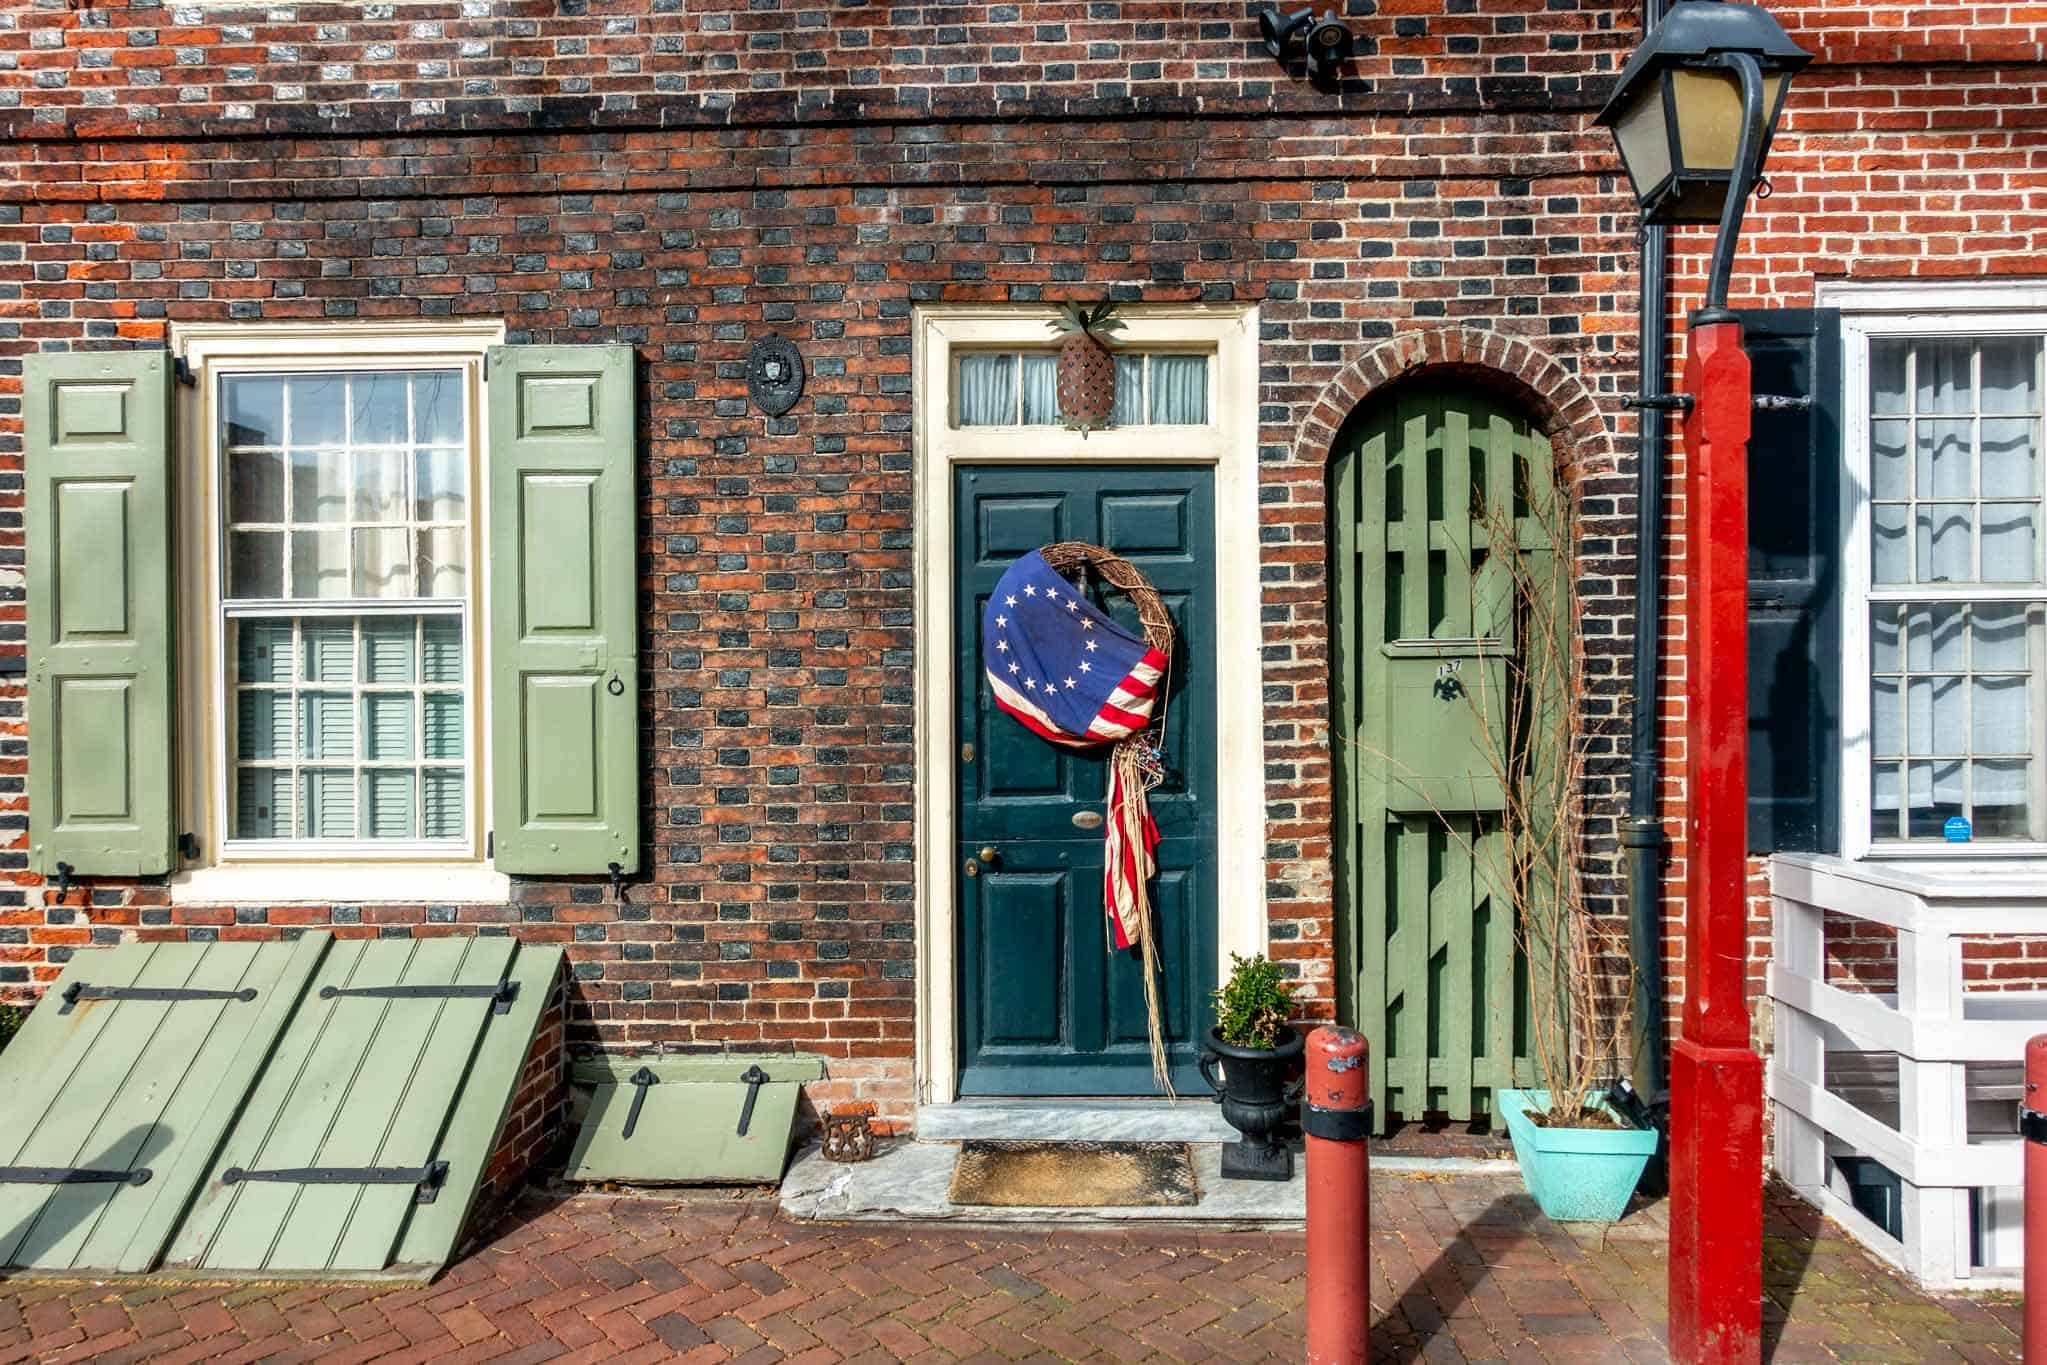 Entrance to home in Elfreth's Alley with green door, shutters, and a wreath covered with the colonial American flag